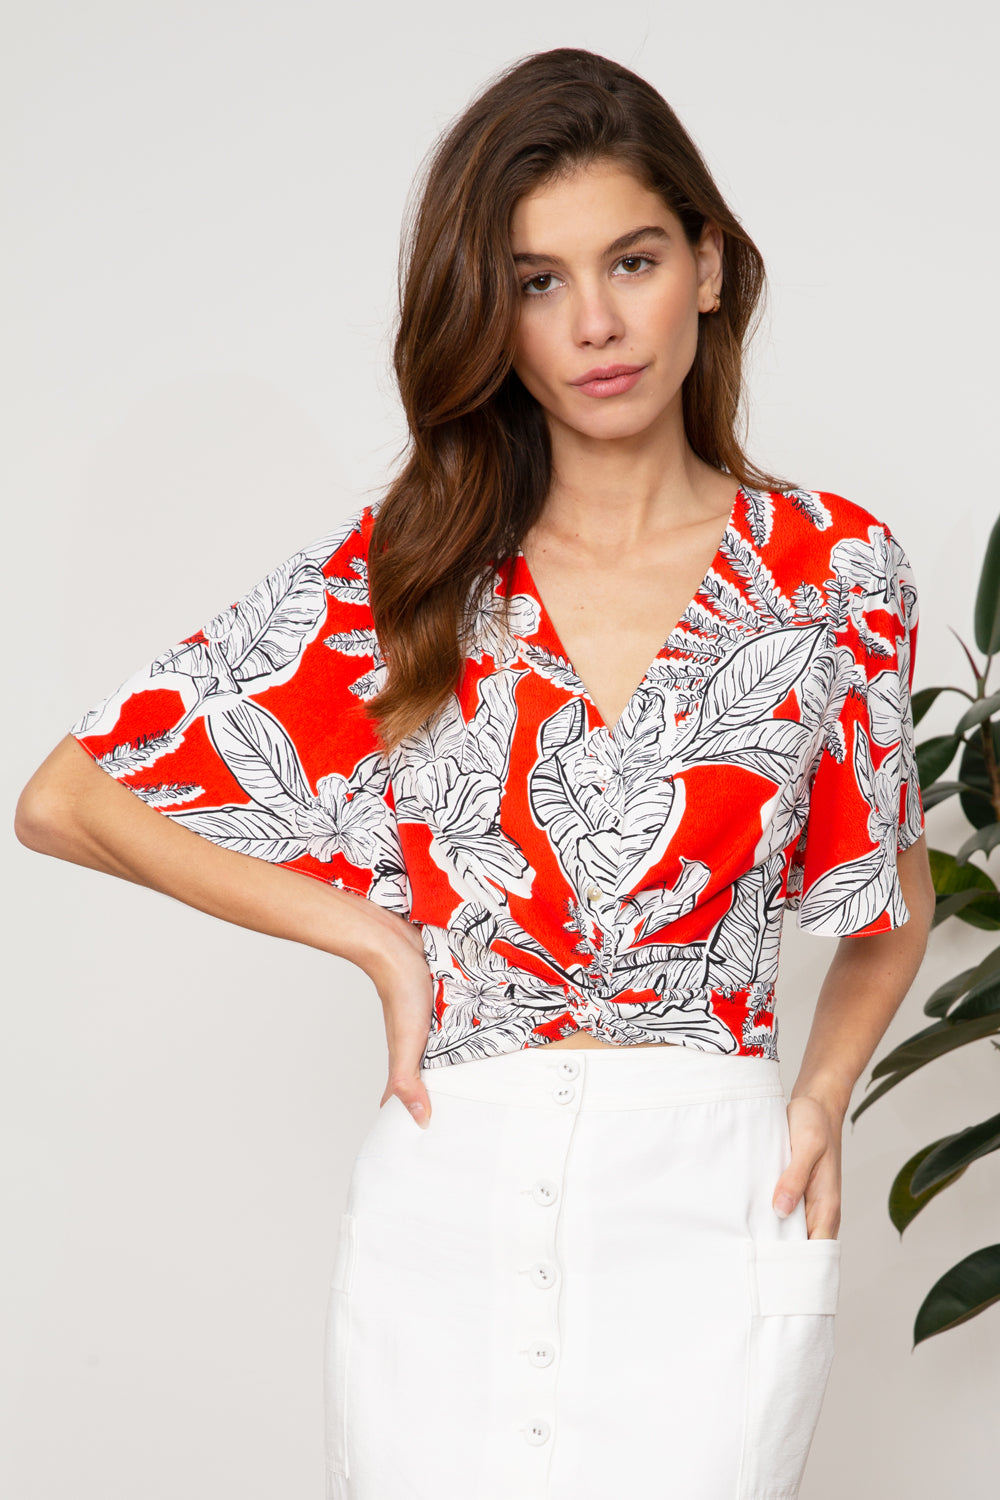 LUCY PARIS - Lela Twist Top